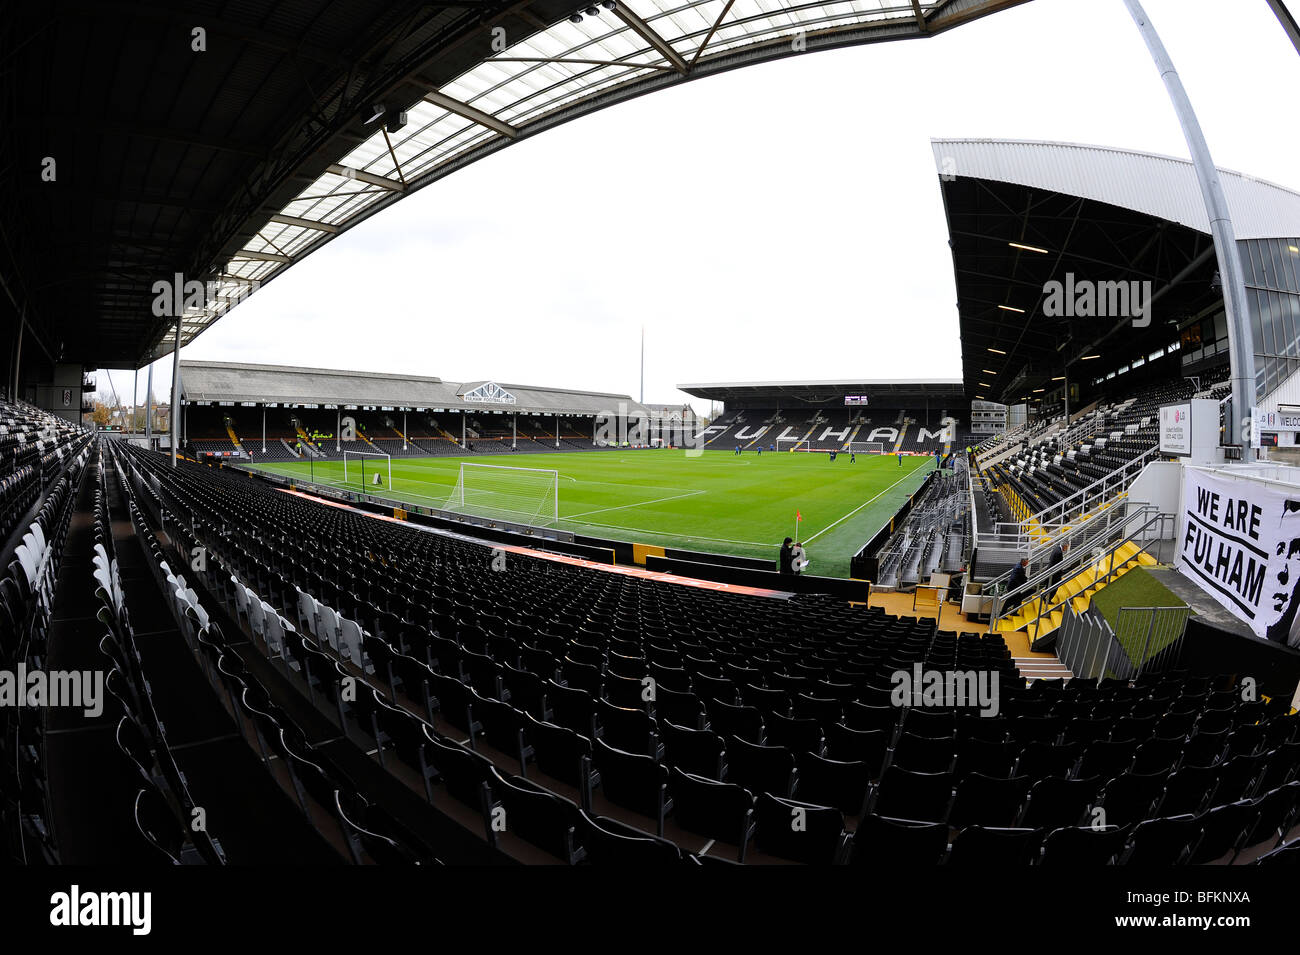 View inside Craven Cottage Stadium, home of Fulham Football Club - Stock Image